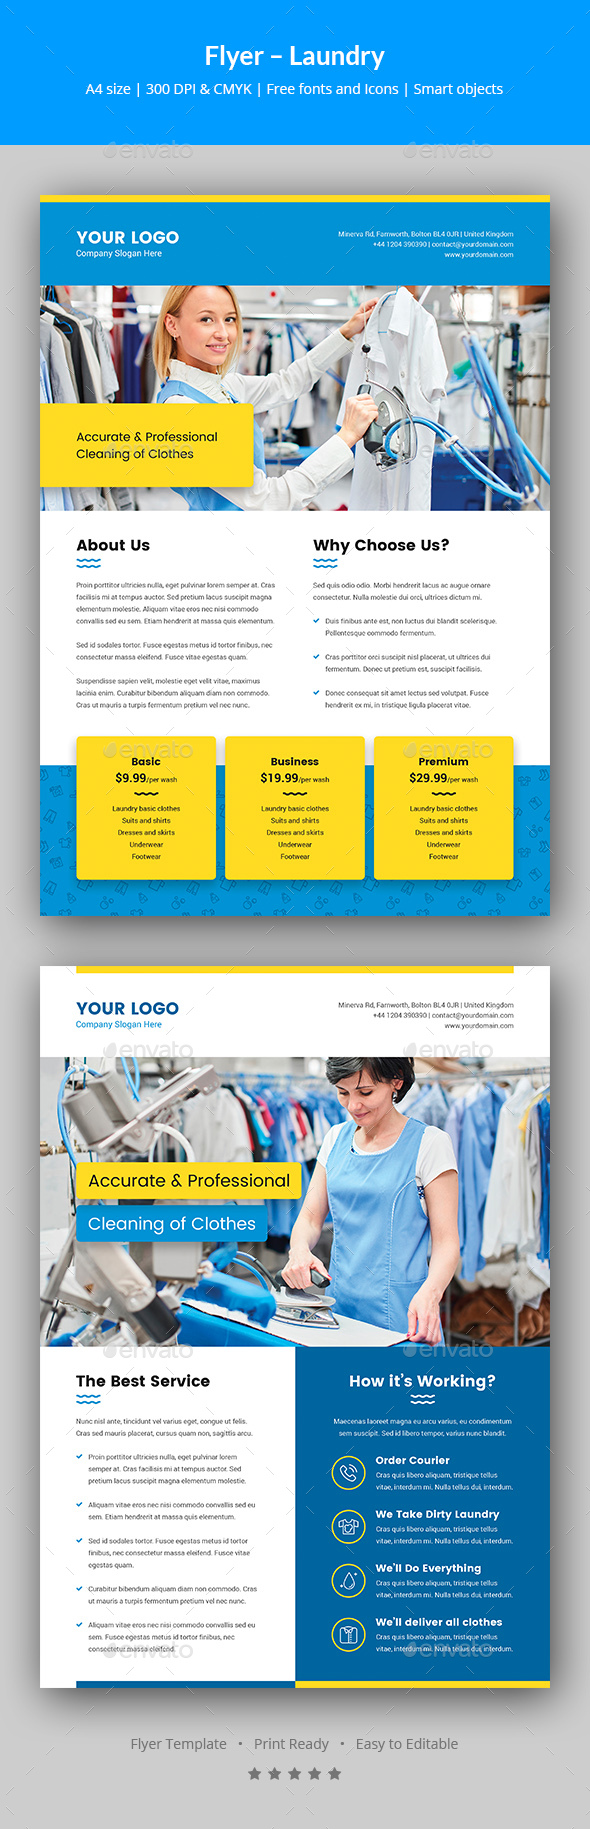 Flyer – Laundry Service - Corporate Flyers